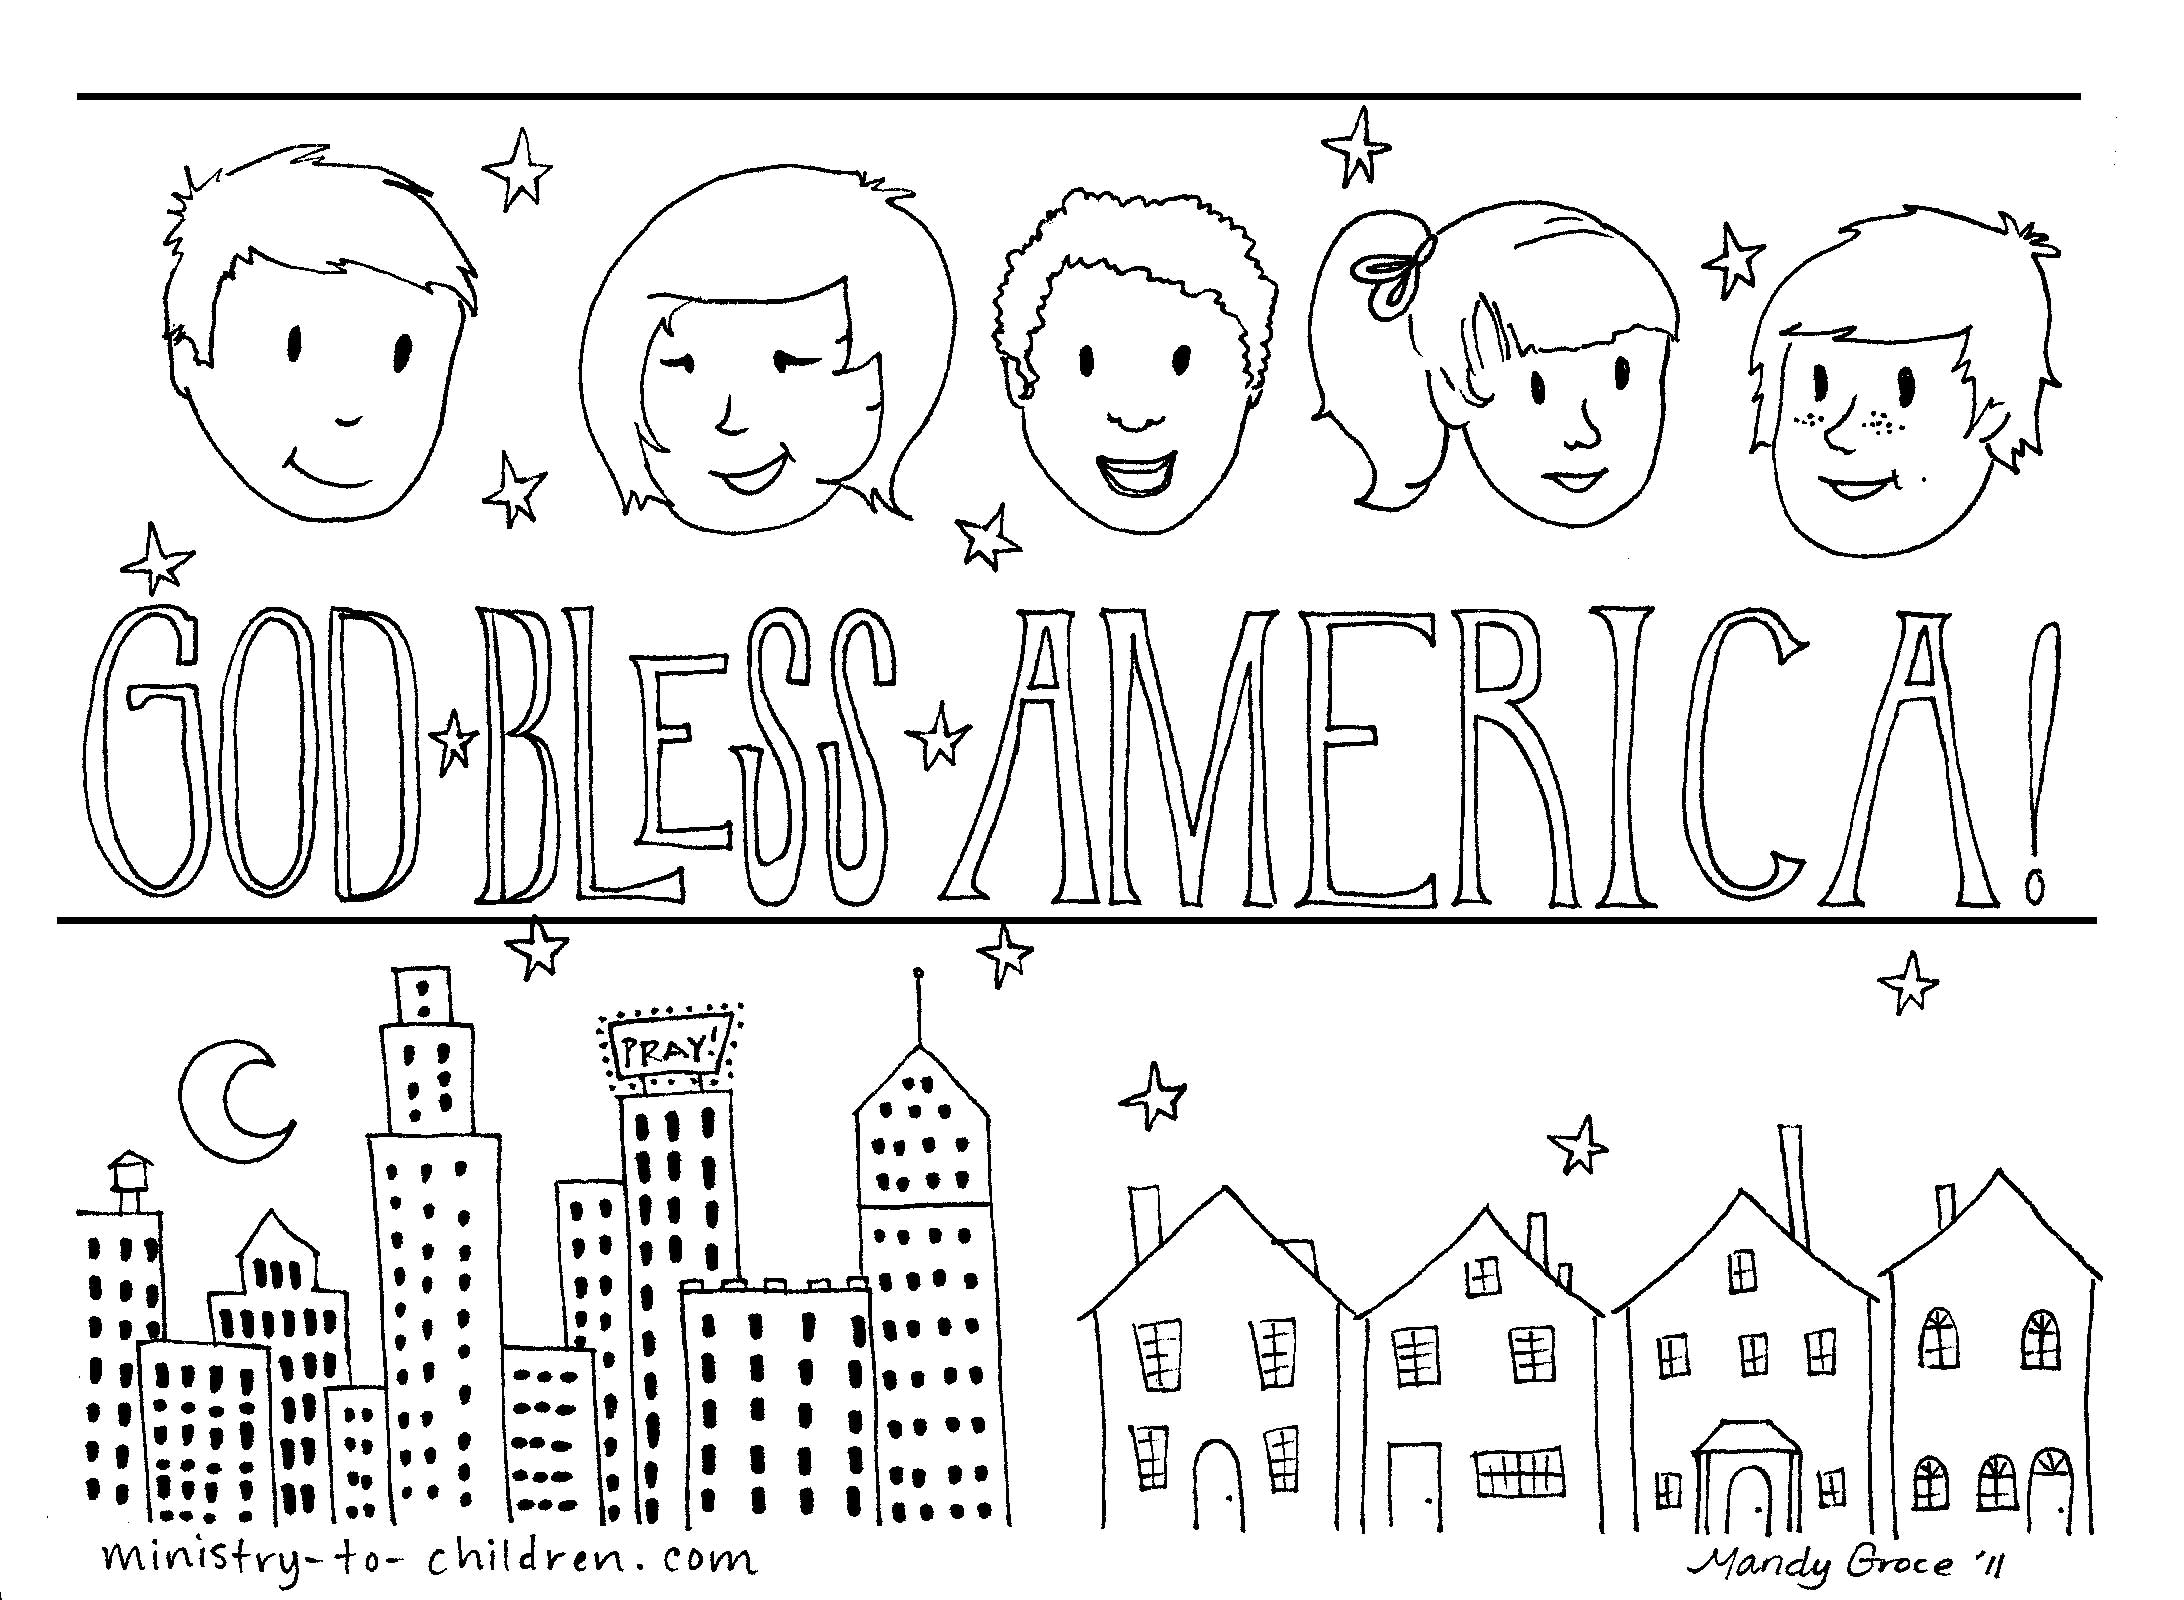 September 11 Coloring Pages Free 4091 Celebrations Coloring Gallery Of Peter Boy In September Coloring Page Printable